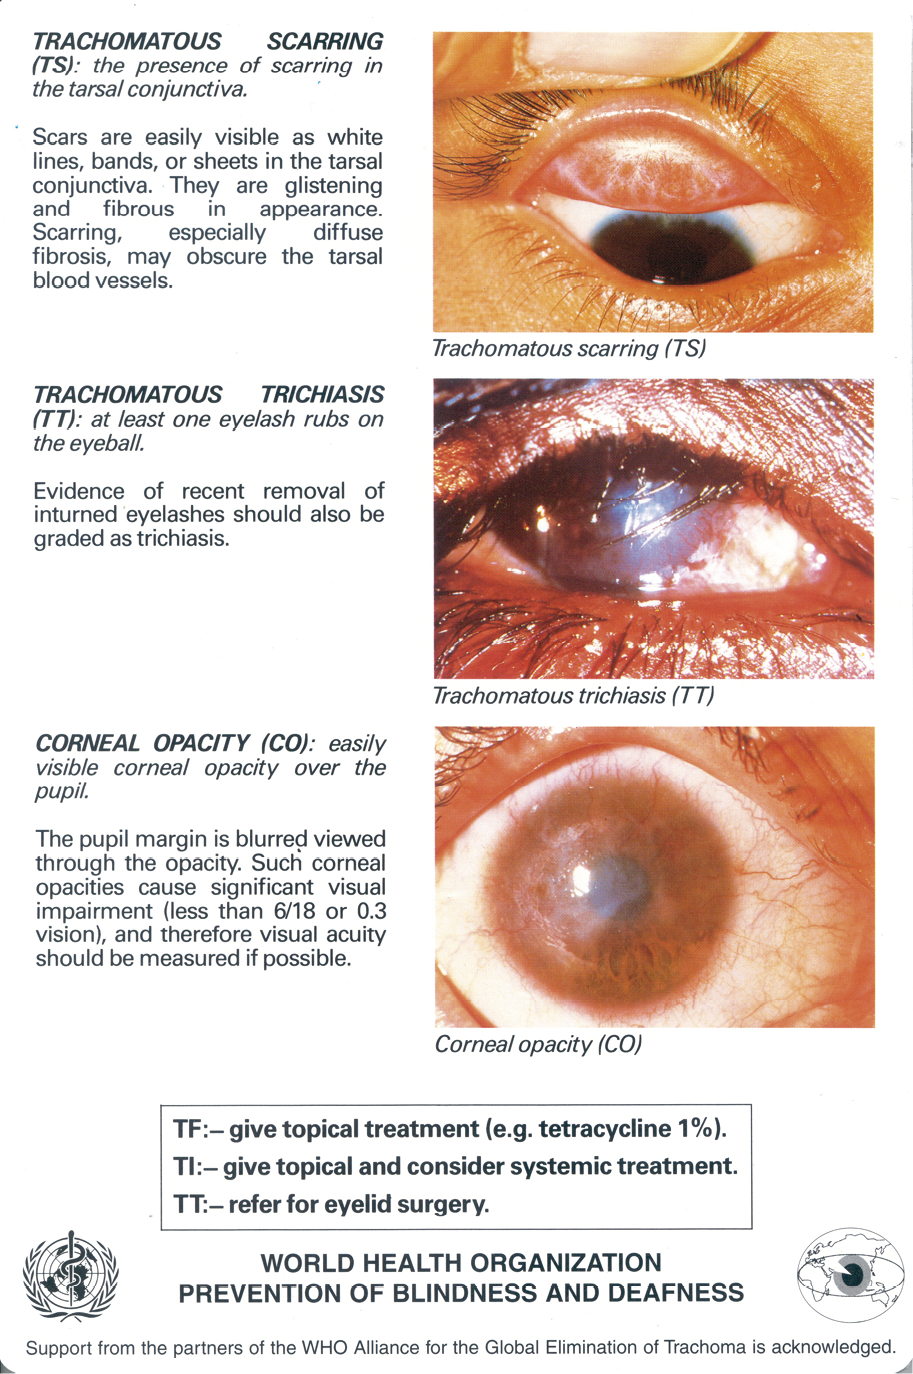 Appendix 1 is the World Health Organisation Trachoma Grading Card with 6 pictorial images showing: normal tarsal conjunctiva; Trachomatous inflammation – follicular (TF); Trachomatous inflammation – follicular and intense (TF + TI); Trachomatous scarring (TS); Trachomatous trichiasis (TT); Corneal opacity (CO).  Picture 1: World Health Organisation Trachoma Grading Card with 3 pictorial images showing: Each eye must be examined and assessed separately Use binocular loupes (x2.5) and adequate lighting (either daylight or a torch) Signs must be clearly seen in order to be considered present. image 1. The eyelids and cornea are observed first for inturned eyelashes and any corneal opacity. The upper eyelid is then turned over (everted) to examine the conjunctiva over the stiffer part of the upper lid (tarsal conjunctiva). The normal conjunctiva is pink, smooth, thin and transparent. Over the whole area of the tarsal conjunctiva there are normally large deep-lying blood vessels that run vertically image 2. Trachomatous Inflammation- Follicular (TF): The presence of five or more follicles in the upper tarsal conjunctiva. Follicles are round swellings that are paler than the surrounding conjunctiva, appearing white, grey or yellow. Follicles must be at least 0.5mm in diameter, i.e., at least as large at the dots shown, to be considered. images 3. Trachomatous Inflammation-Intense (TI): Pronounced inflammatory thickening of the tarsal conjunctiva that obscures more than half of the normal deep tarsal vessels. The tarsal conjunctiva appears red, rough and thickened. There are usually numerous follicles, which may be partially or totally covered by the thickened conjunctiva.    Picture 2: World Health Organisation Trachoma Grading Card with 3 pictorial images showing: Image 4. Trachomatous scarring (TS); the presence of scaring in the tarsal conjunctiva Scars are easily visible as white lines, bands or sheets in the tarsal conjunctiva. They are glistening and fibrous in appearance.  Scarring, especially disfuse fibrosis, may obscure the tarsal blood vessels. Image 5. Trachomatous trichiasis (TT); at least one eyelash rubs on the eyeball.  Evidence of recent removal of inturned eyelashes should also be graded as trichiasis. Image 6. Corneal opacity (CO): easily visible corneal opacity over the pupil.  The pupil margin is blurred viewed through the opacity.  Such corneal opacities cause significant visual impairment (less than 6/18 or 0.3 vision) and therefore visual acuity should be measured if possible.